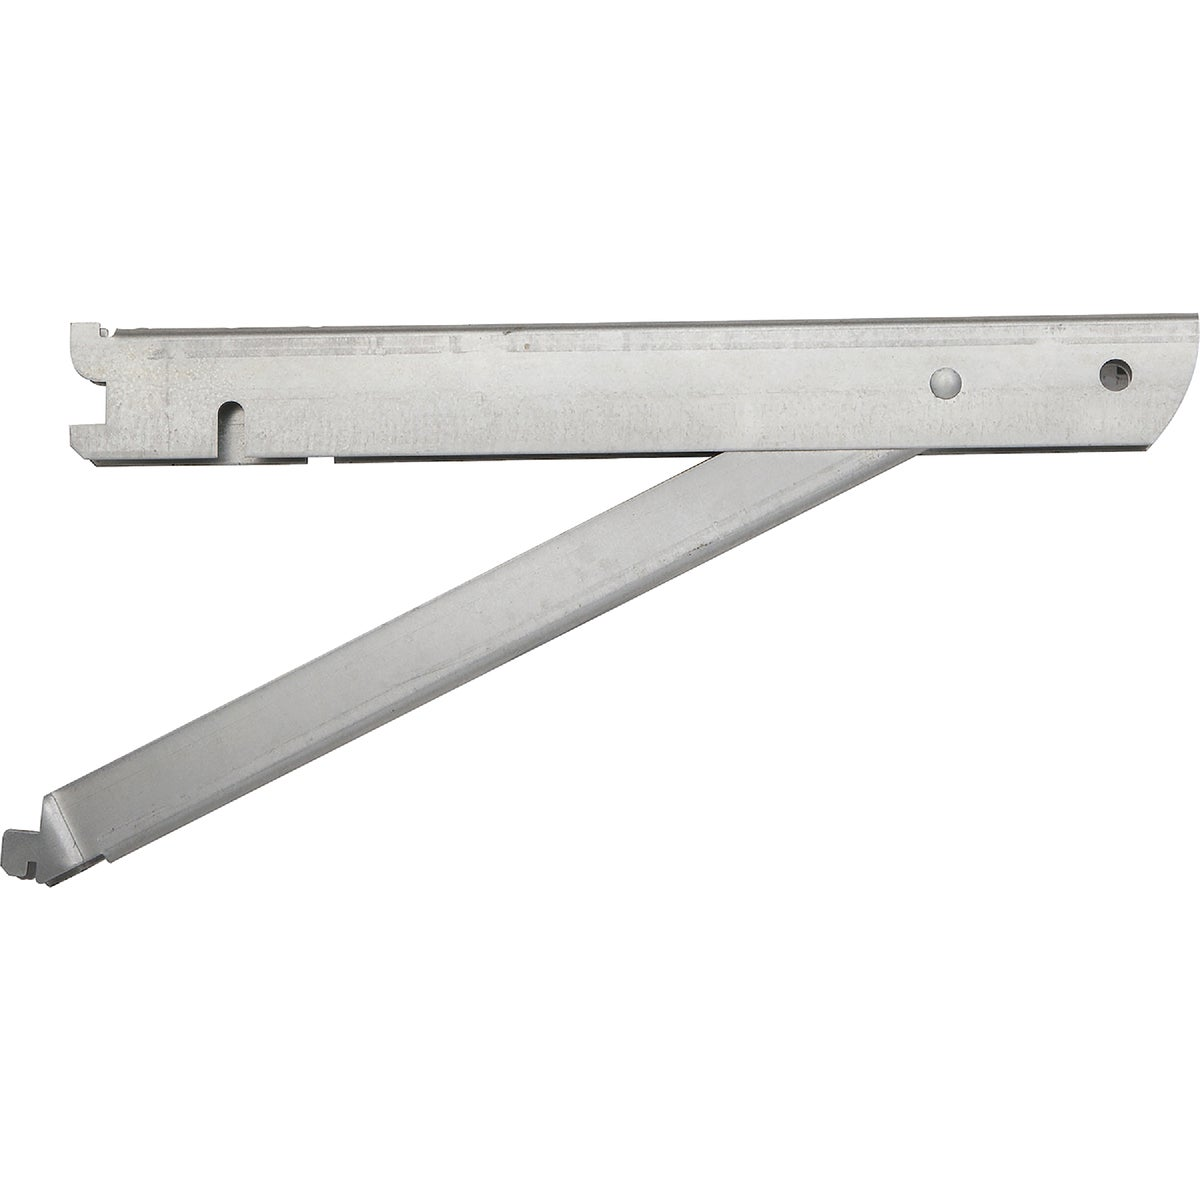 "13"" SUPPORT BRACKET - BK010314 by Knape & Vogt Mfg Co"